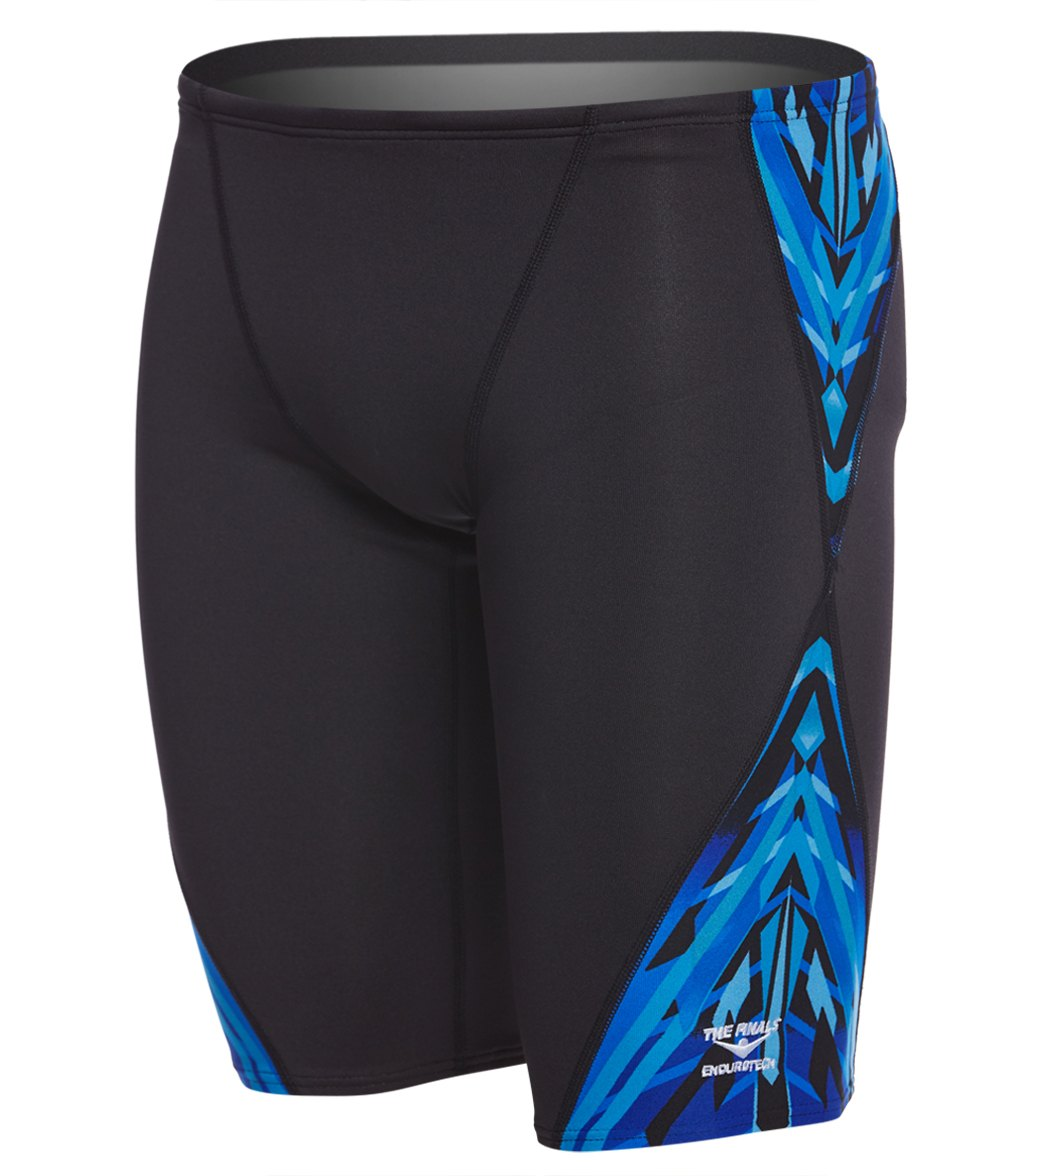 8c4a203785f1 ... The Finals Men s Hyperblast B All Over Jammer Swimsuit. Share